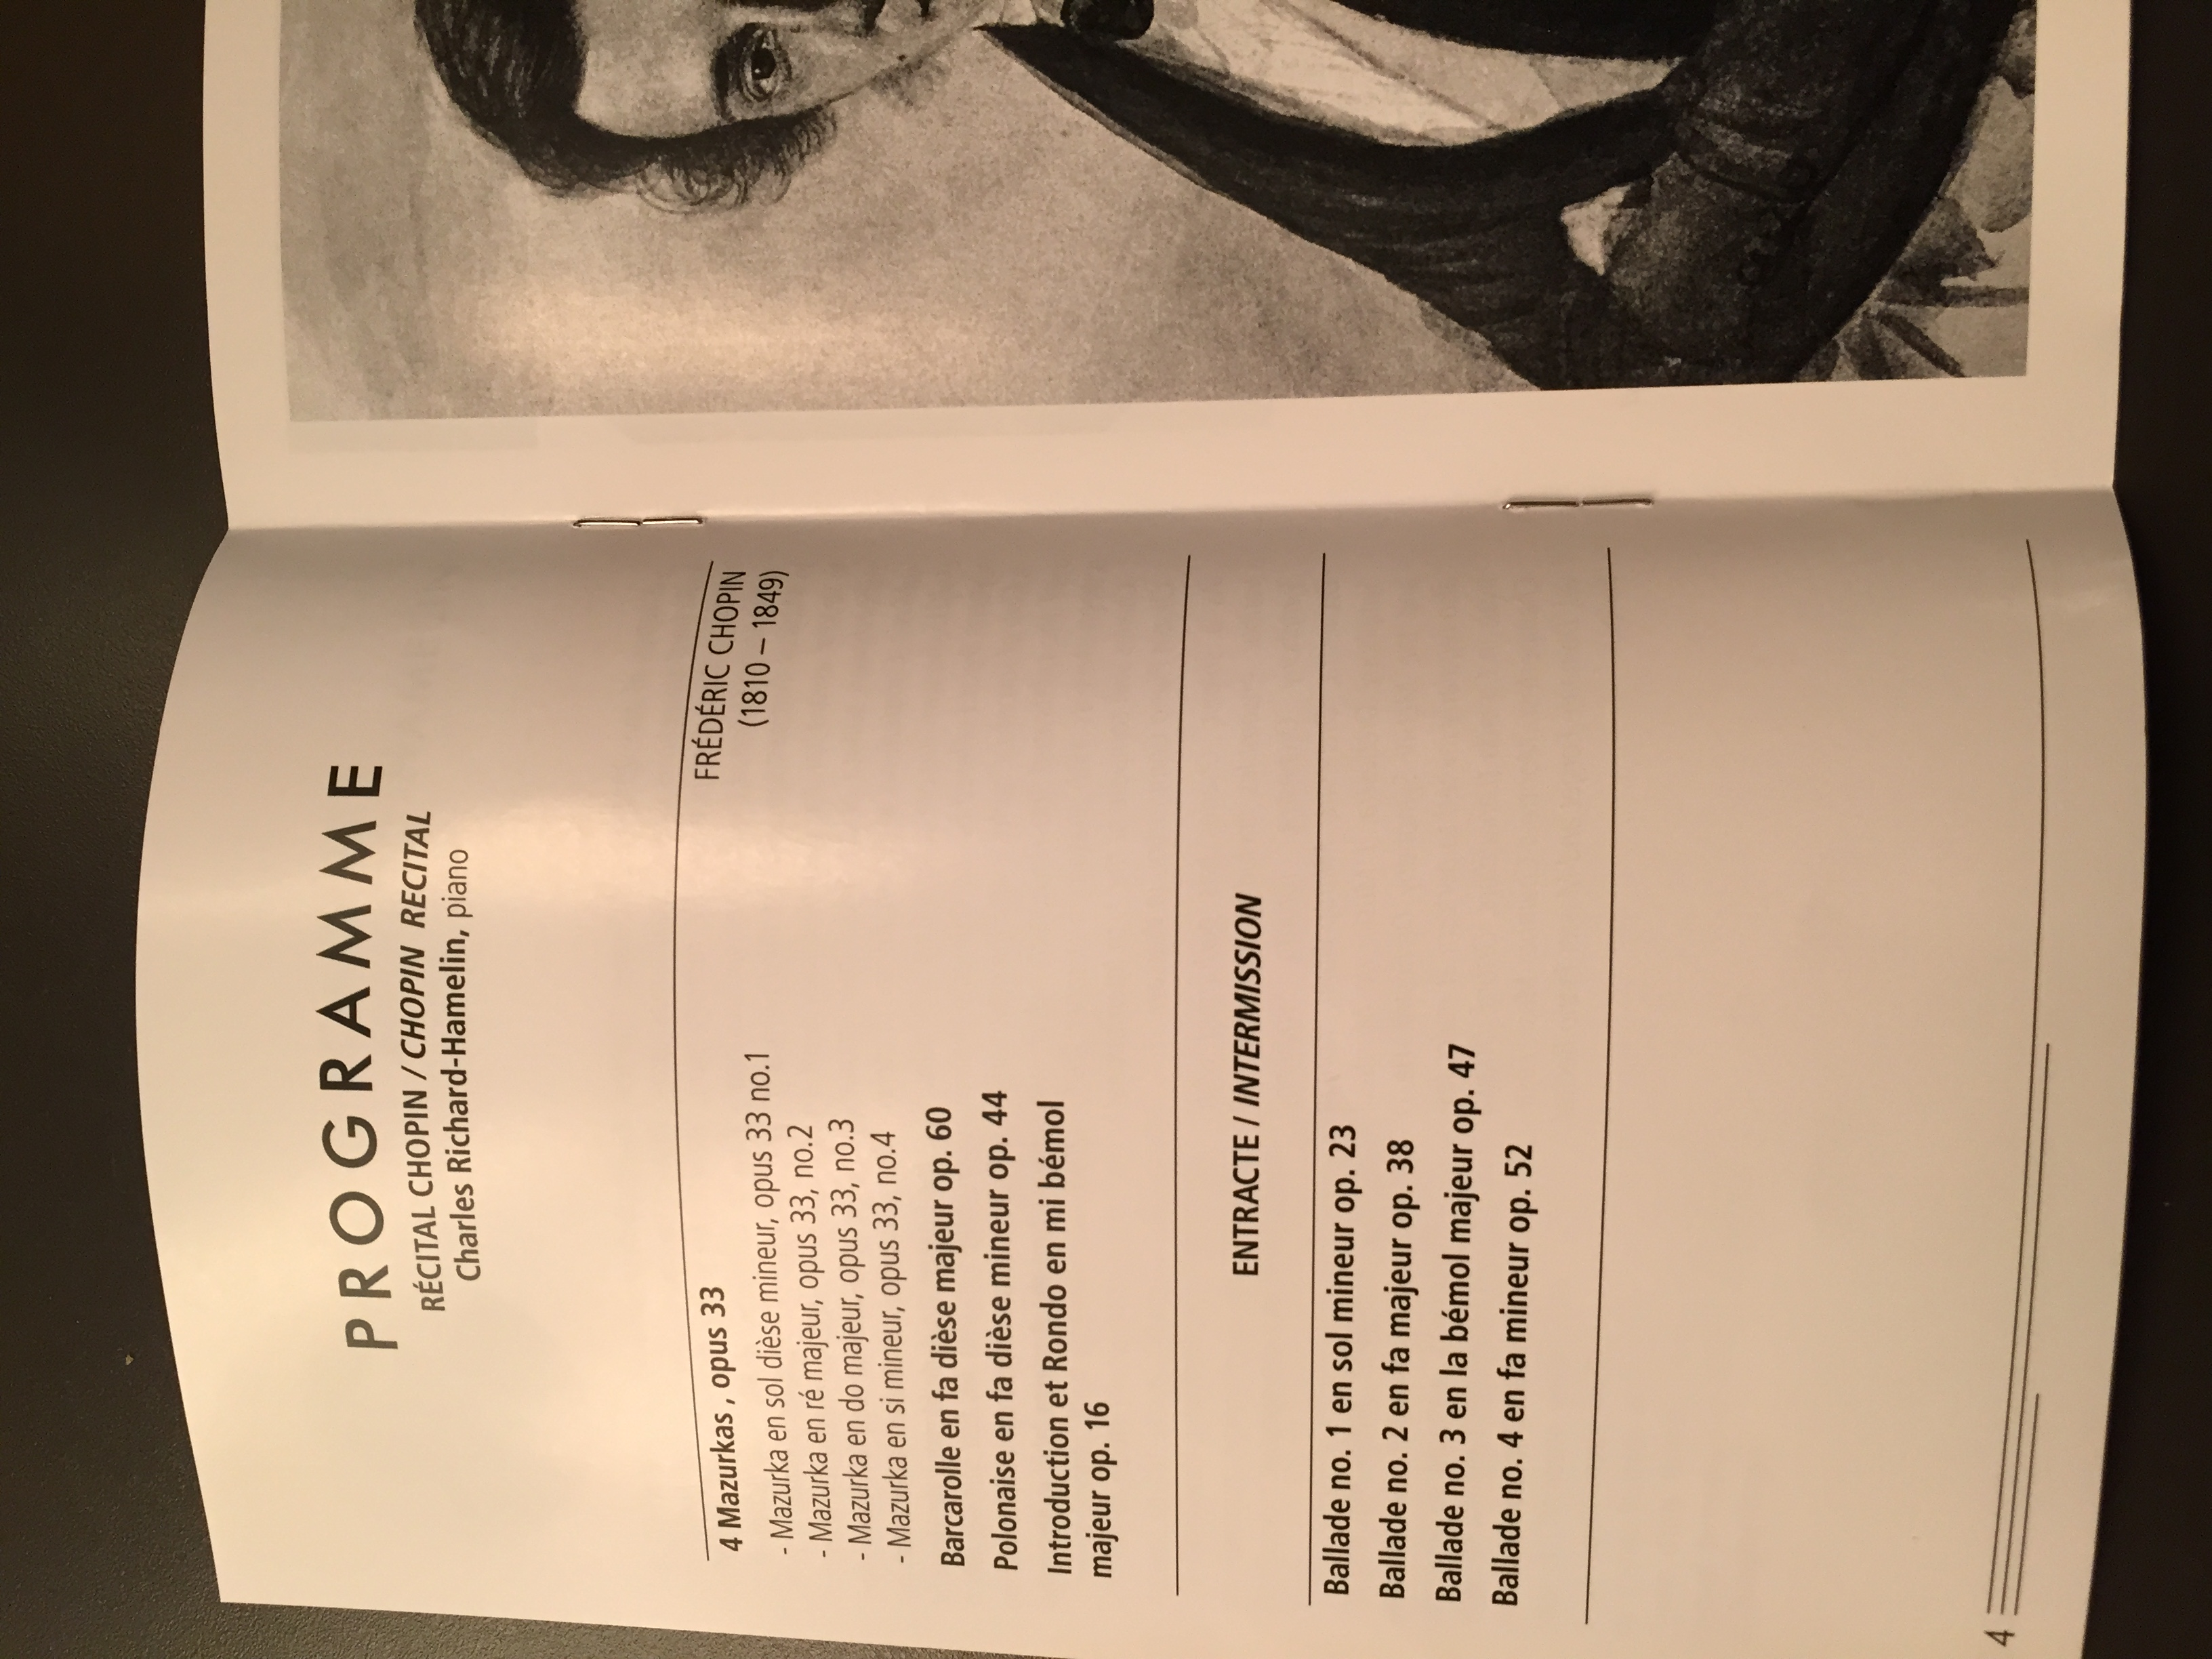 The program for my Chopin recital in Lachine (July 12, 2015)